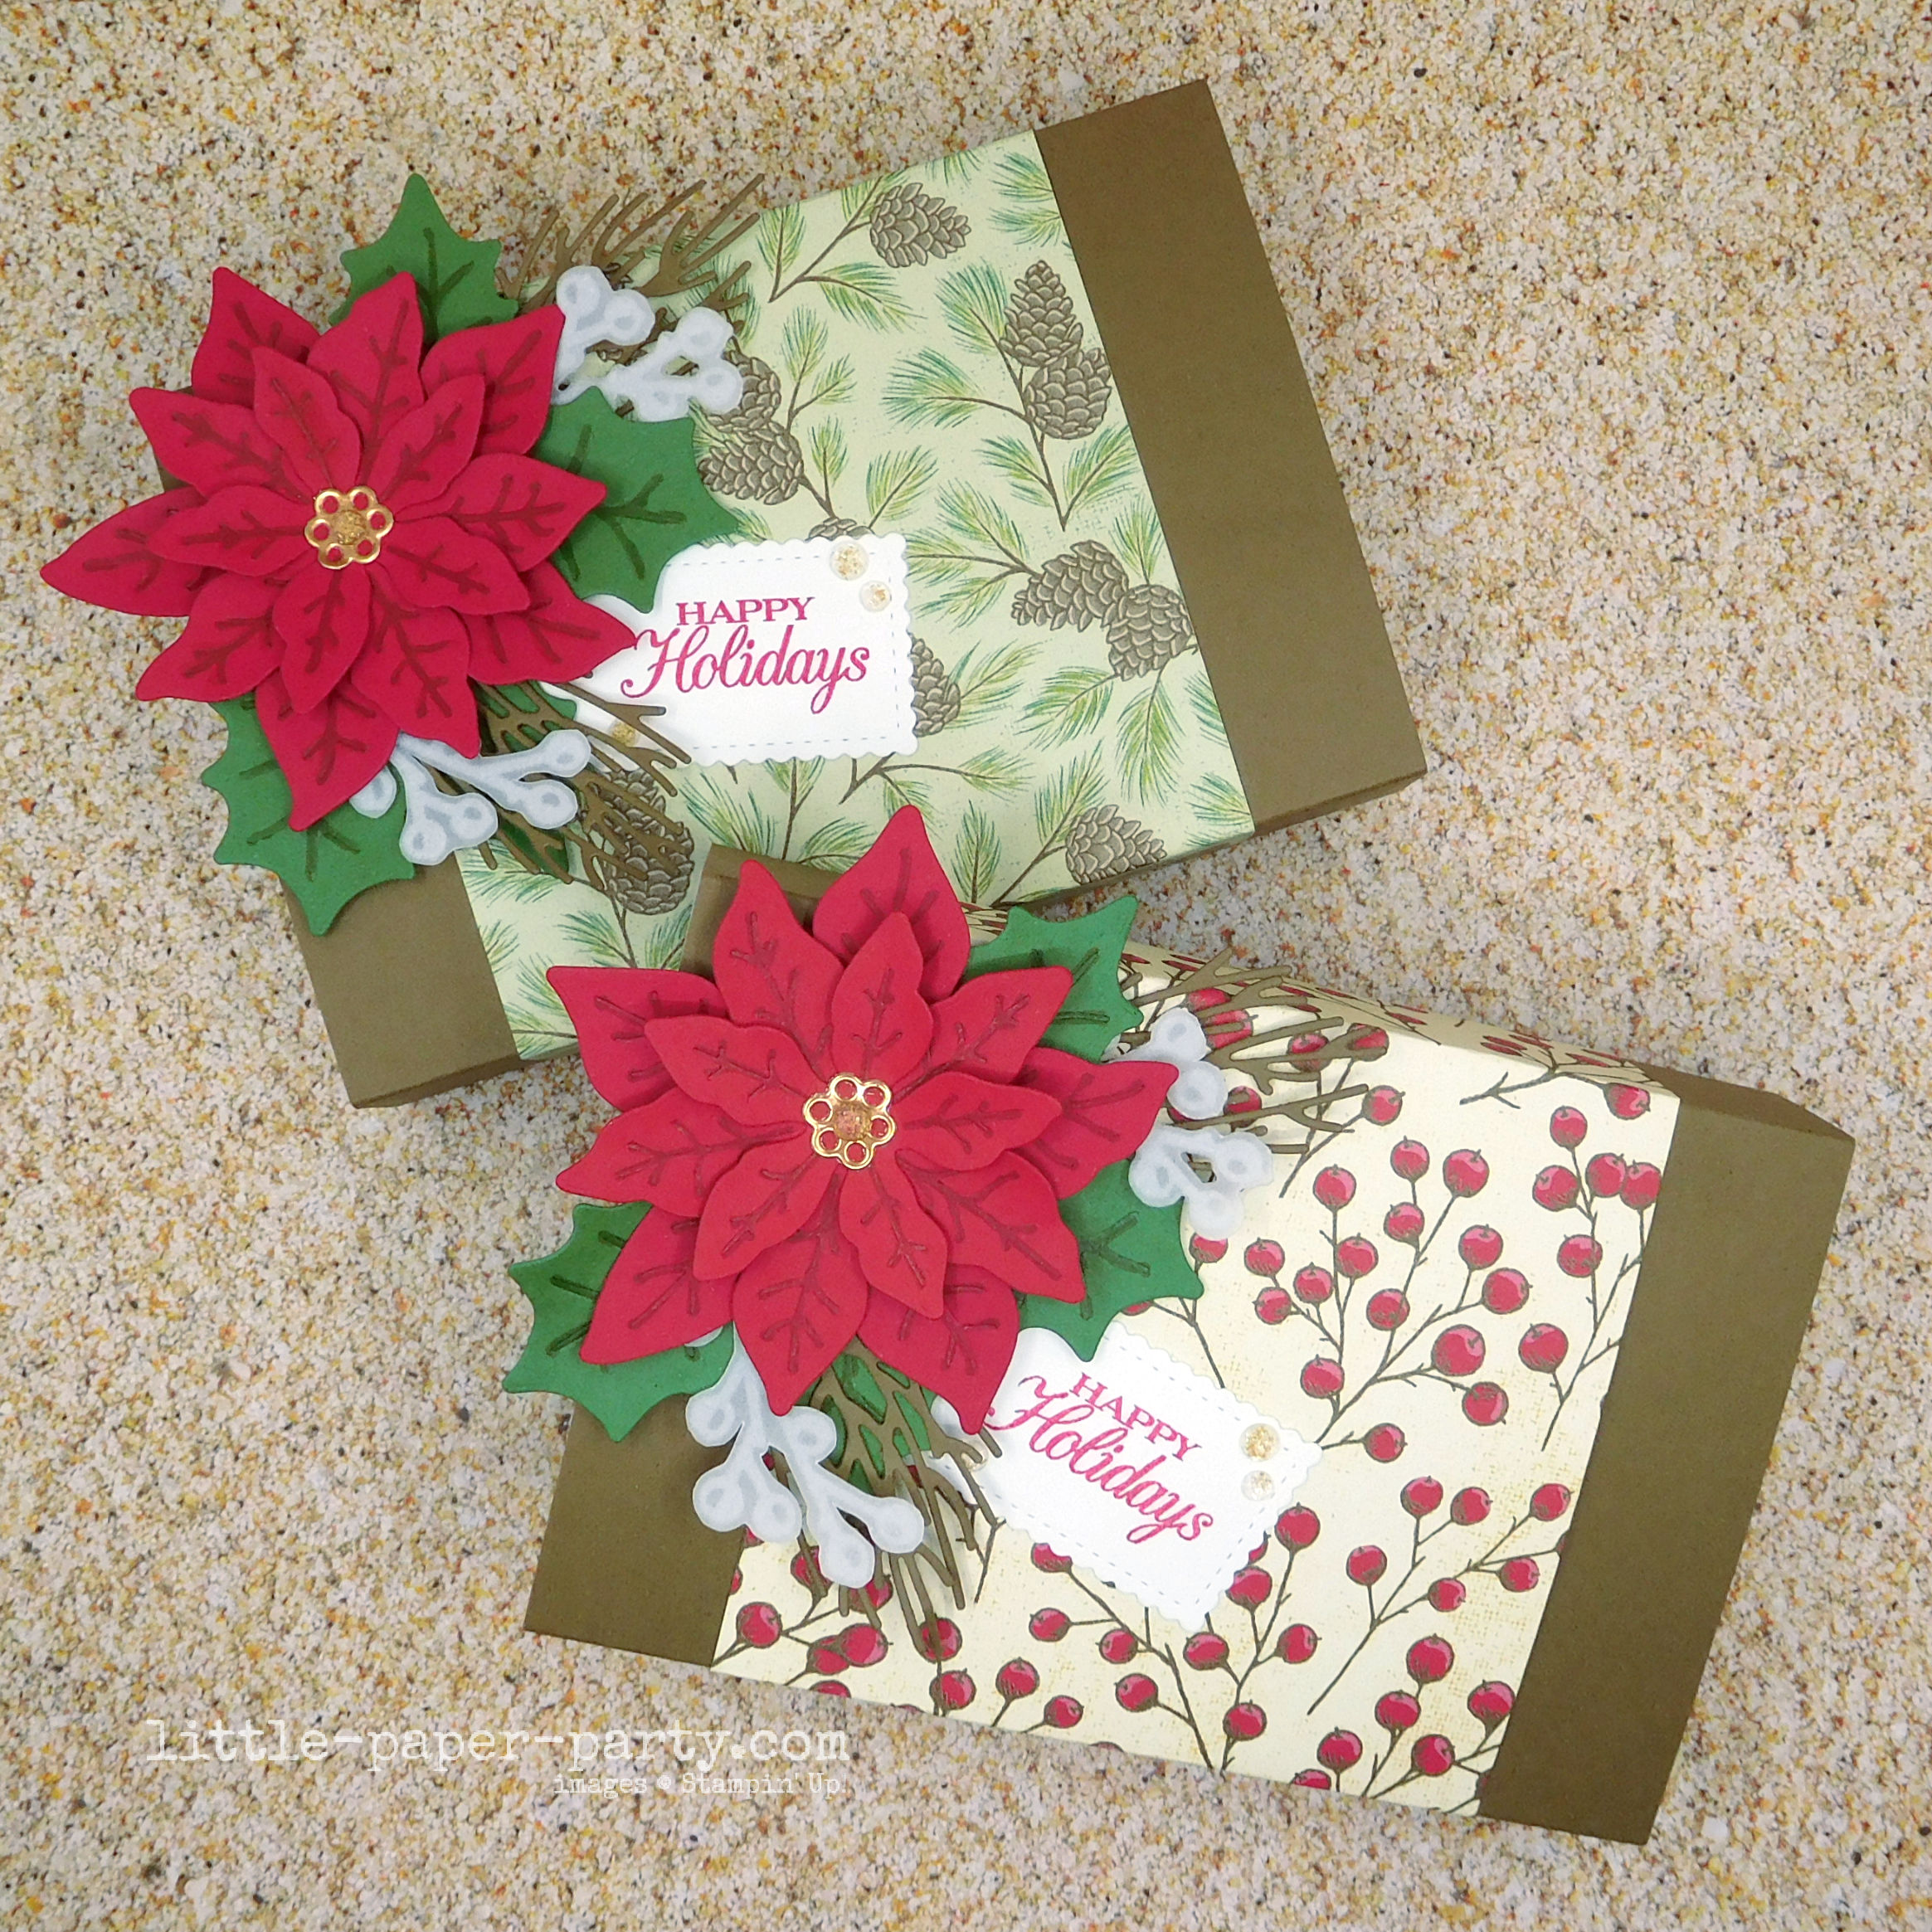 Little Paper Party, 12 Days of Christmas 2020 - Stocking Stuffers #1, 1